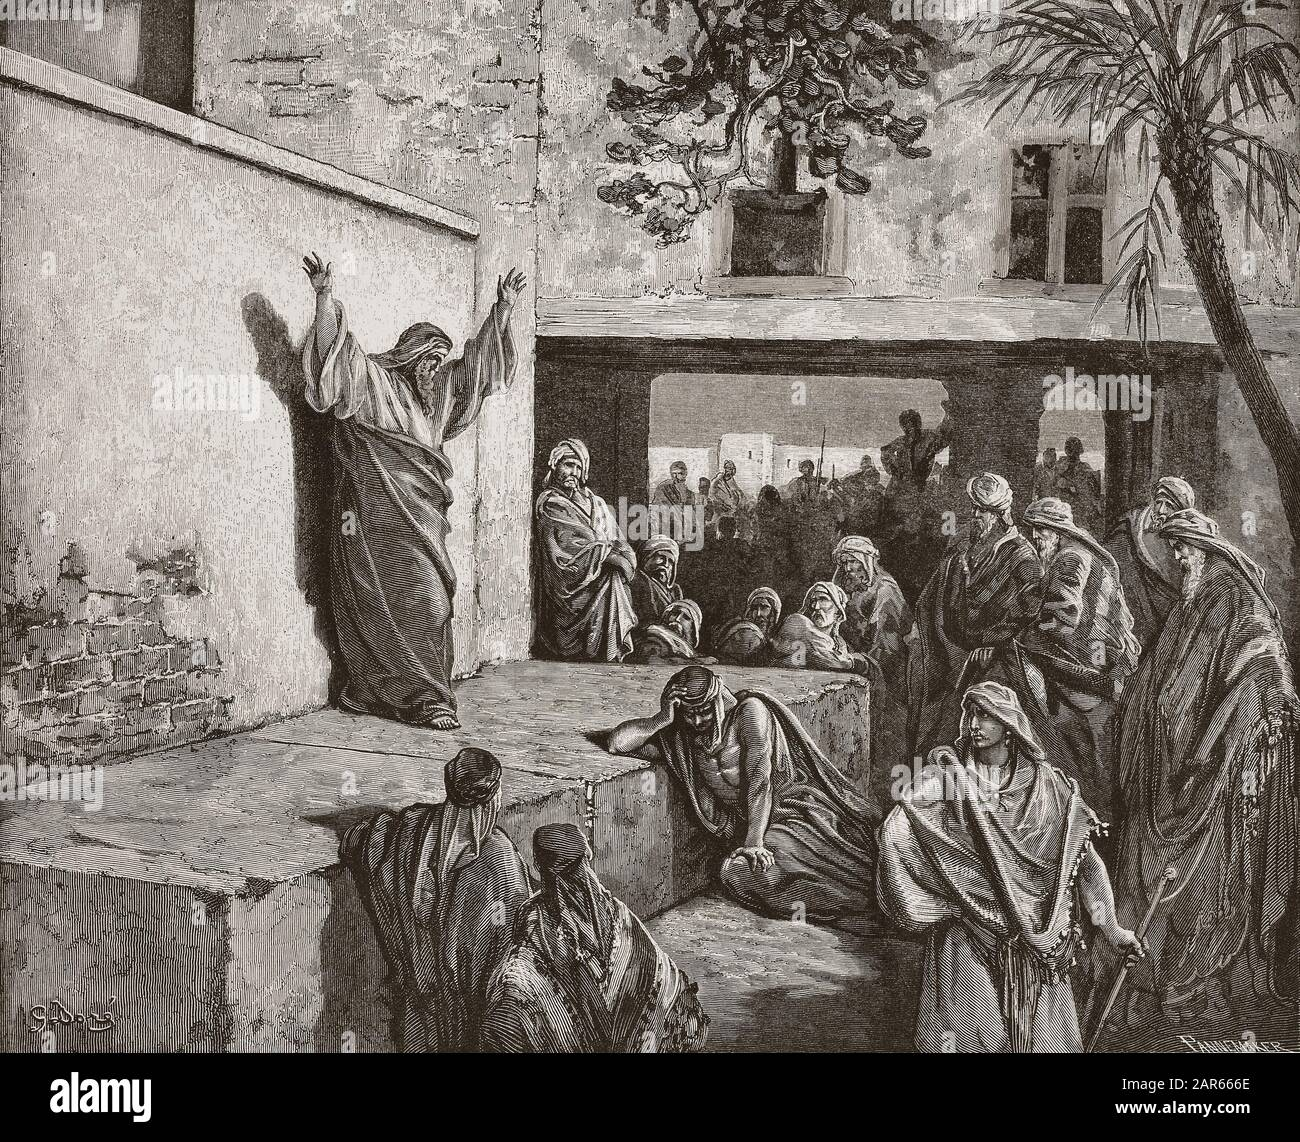 """Micah the Moreshite prophet preaching to the Israelites, engraving by Gustave Dore - """"Le prophete Michee exhortant le peuple d'Israel a la penitence"""" Stock Photo"""